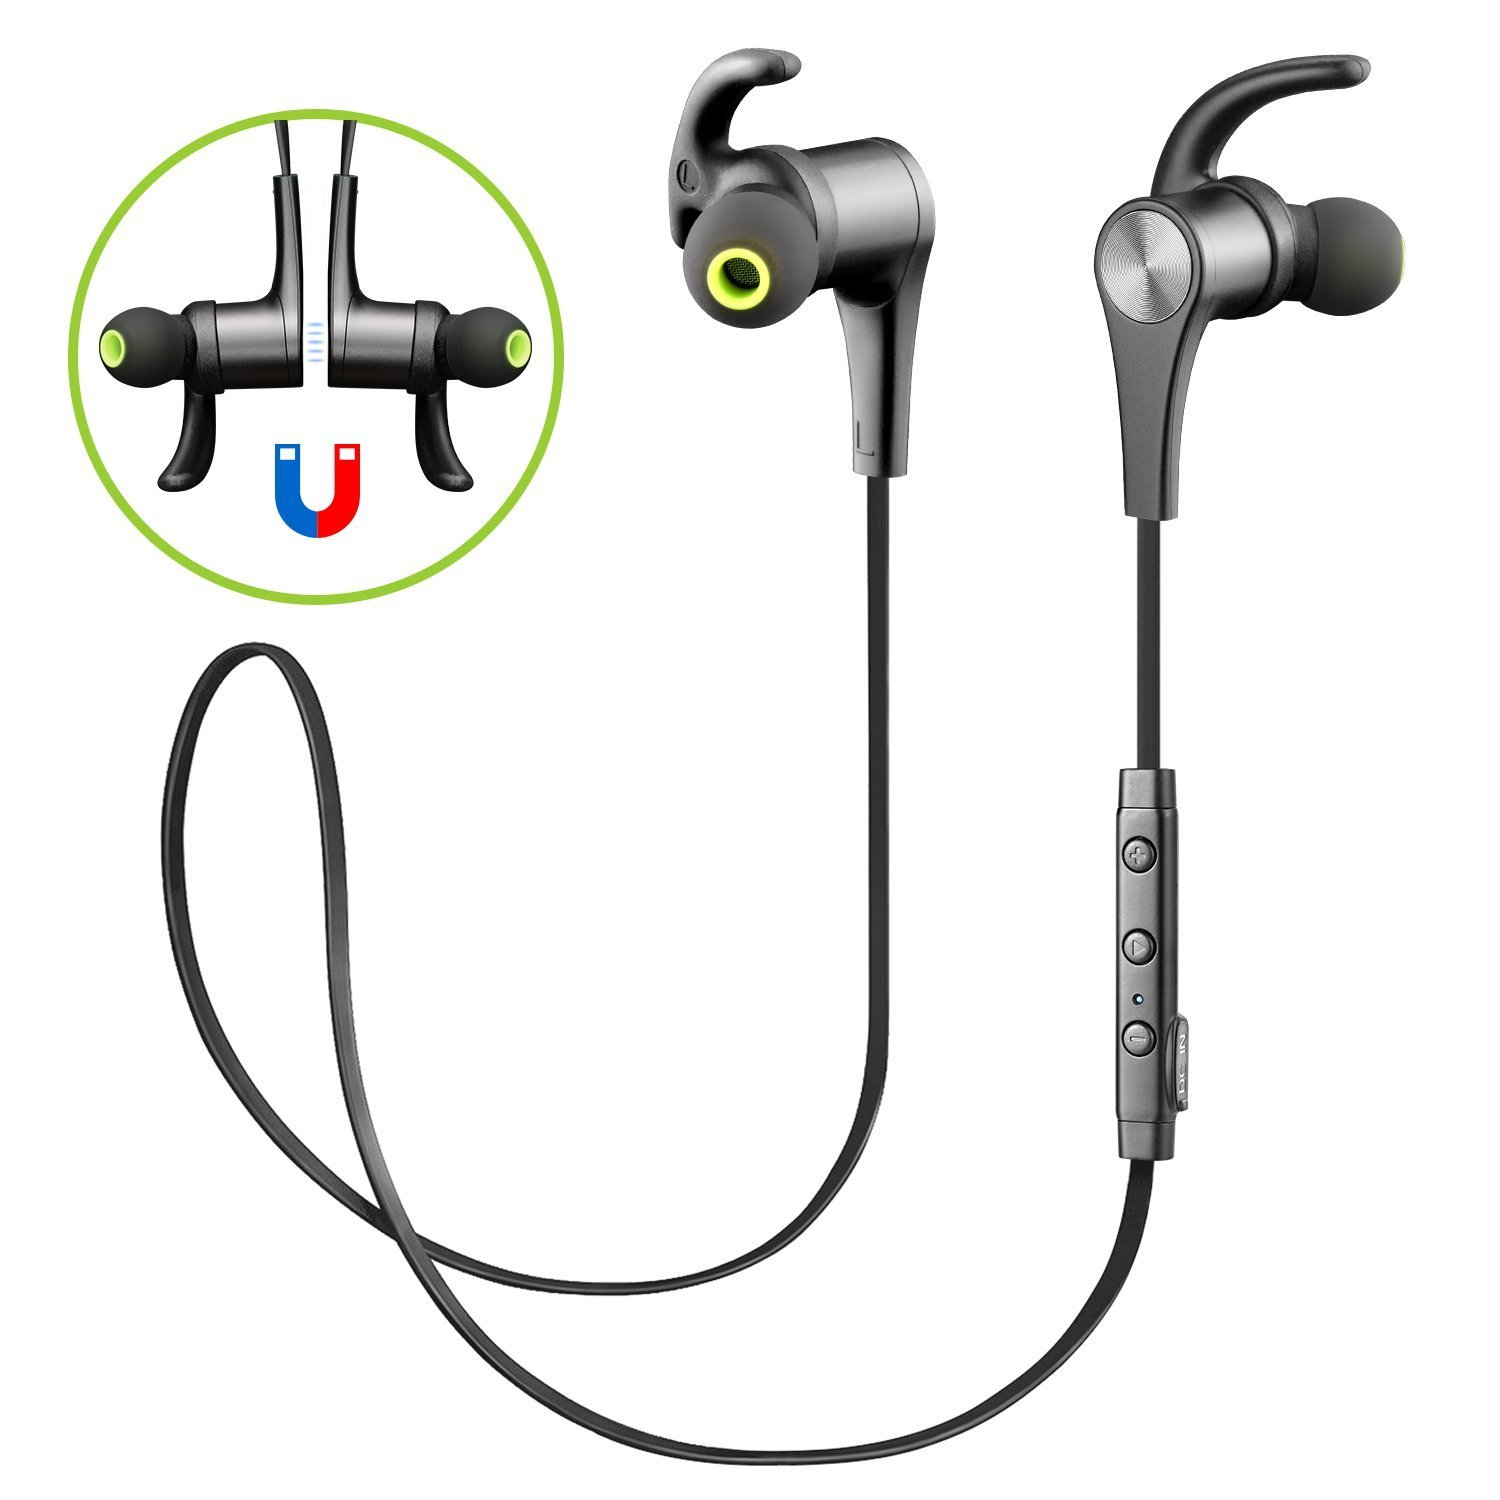 SoundPEATS - Cuffie Bluetooth Auricolari Wireless (Bluetooth 4.1, aptX, A2DP, 6 ore di Riproduzione, Microfono Incorporato, CVC 6.0 ) per iPhone, Galaxy, Tablet, MP3 - Nero